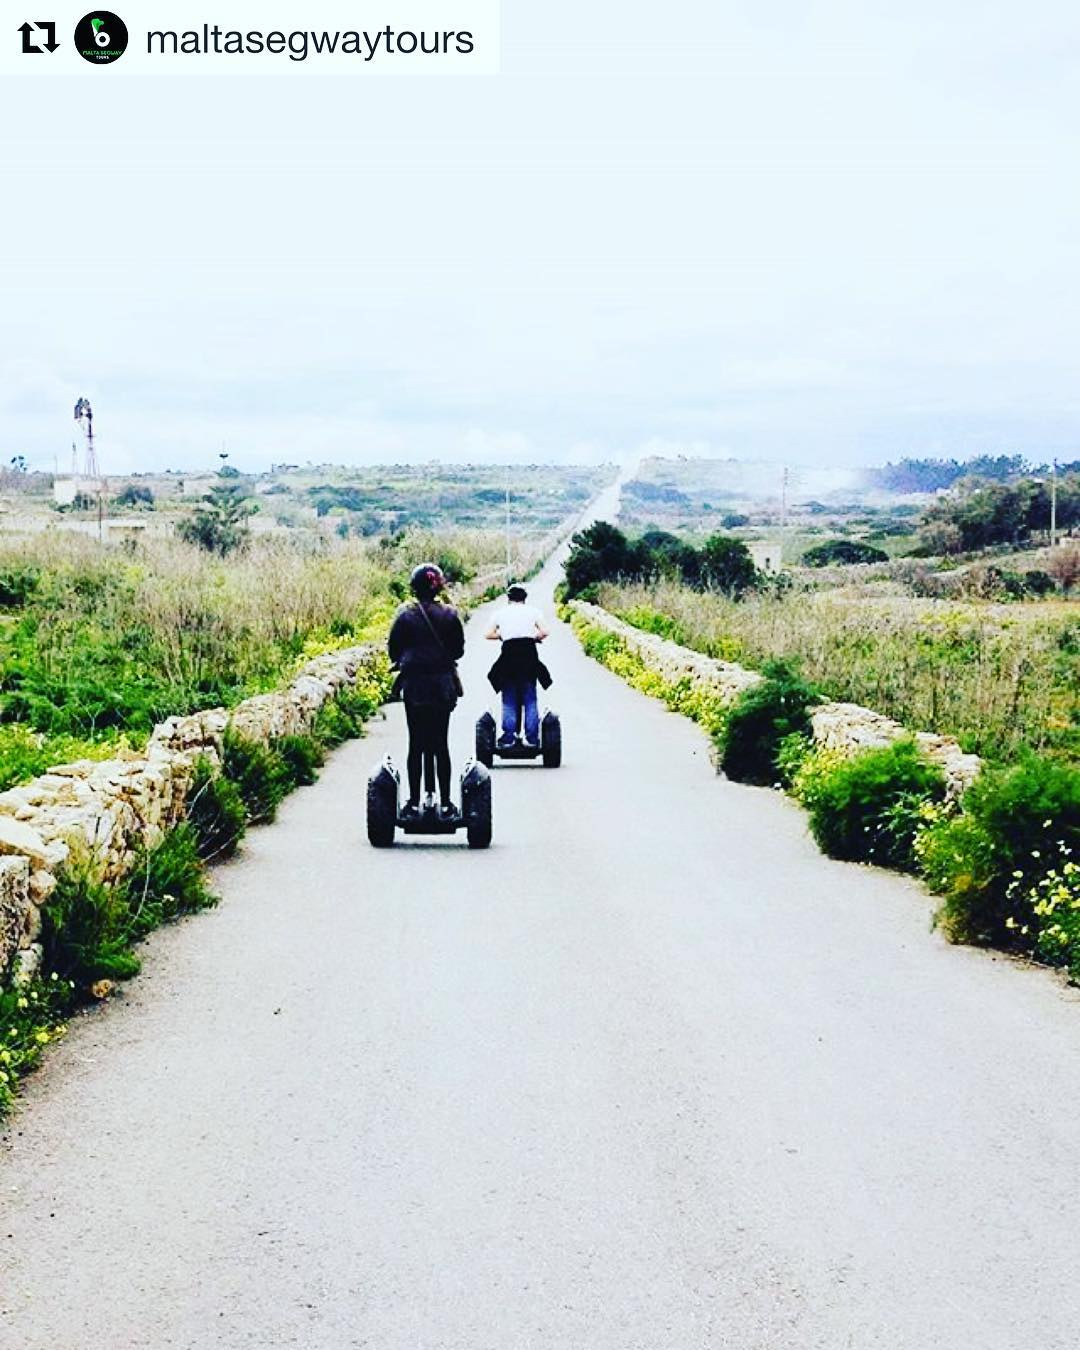 Our idea of the perfect road trip this summer! Malta 🇲🇹 is looking like the road that should be travelled. Check out @maltasegwaytours  Find your favorite destination @segwayworldwide .  @maltasegwaytours ・・・ the #malta🇲🇹